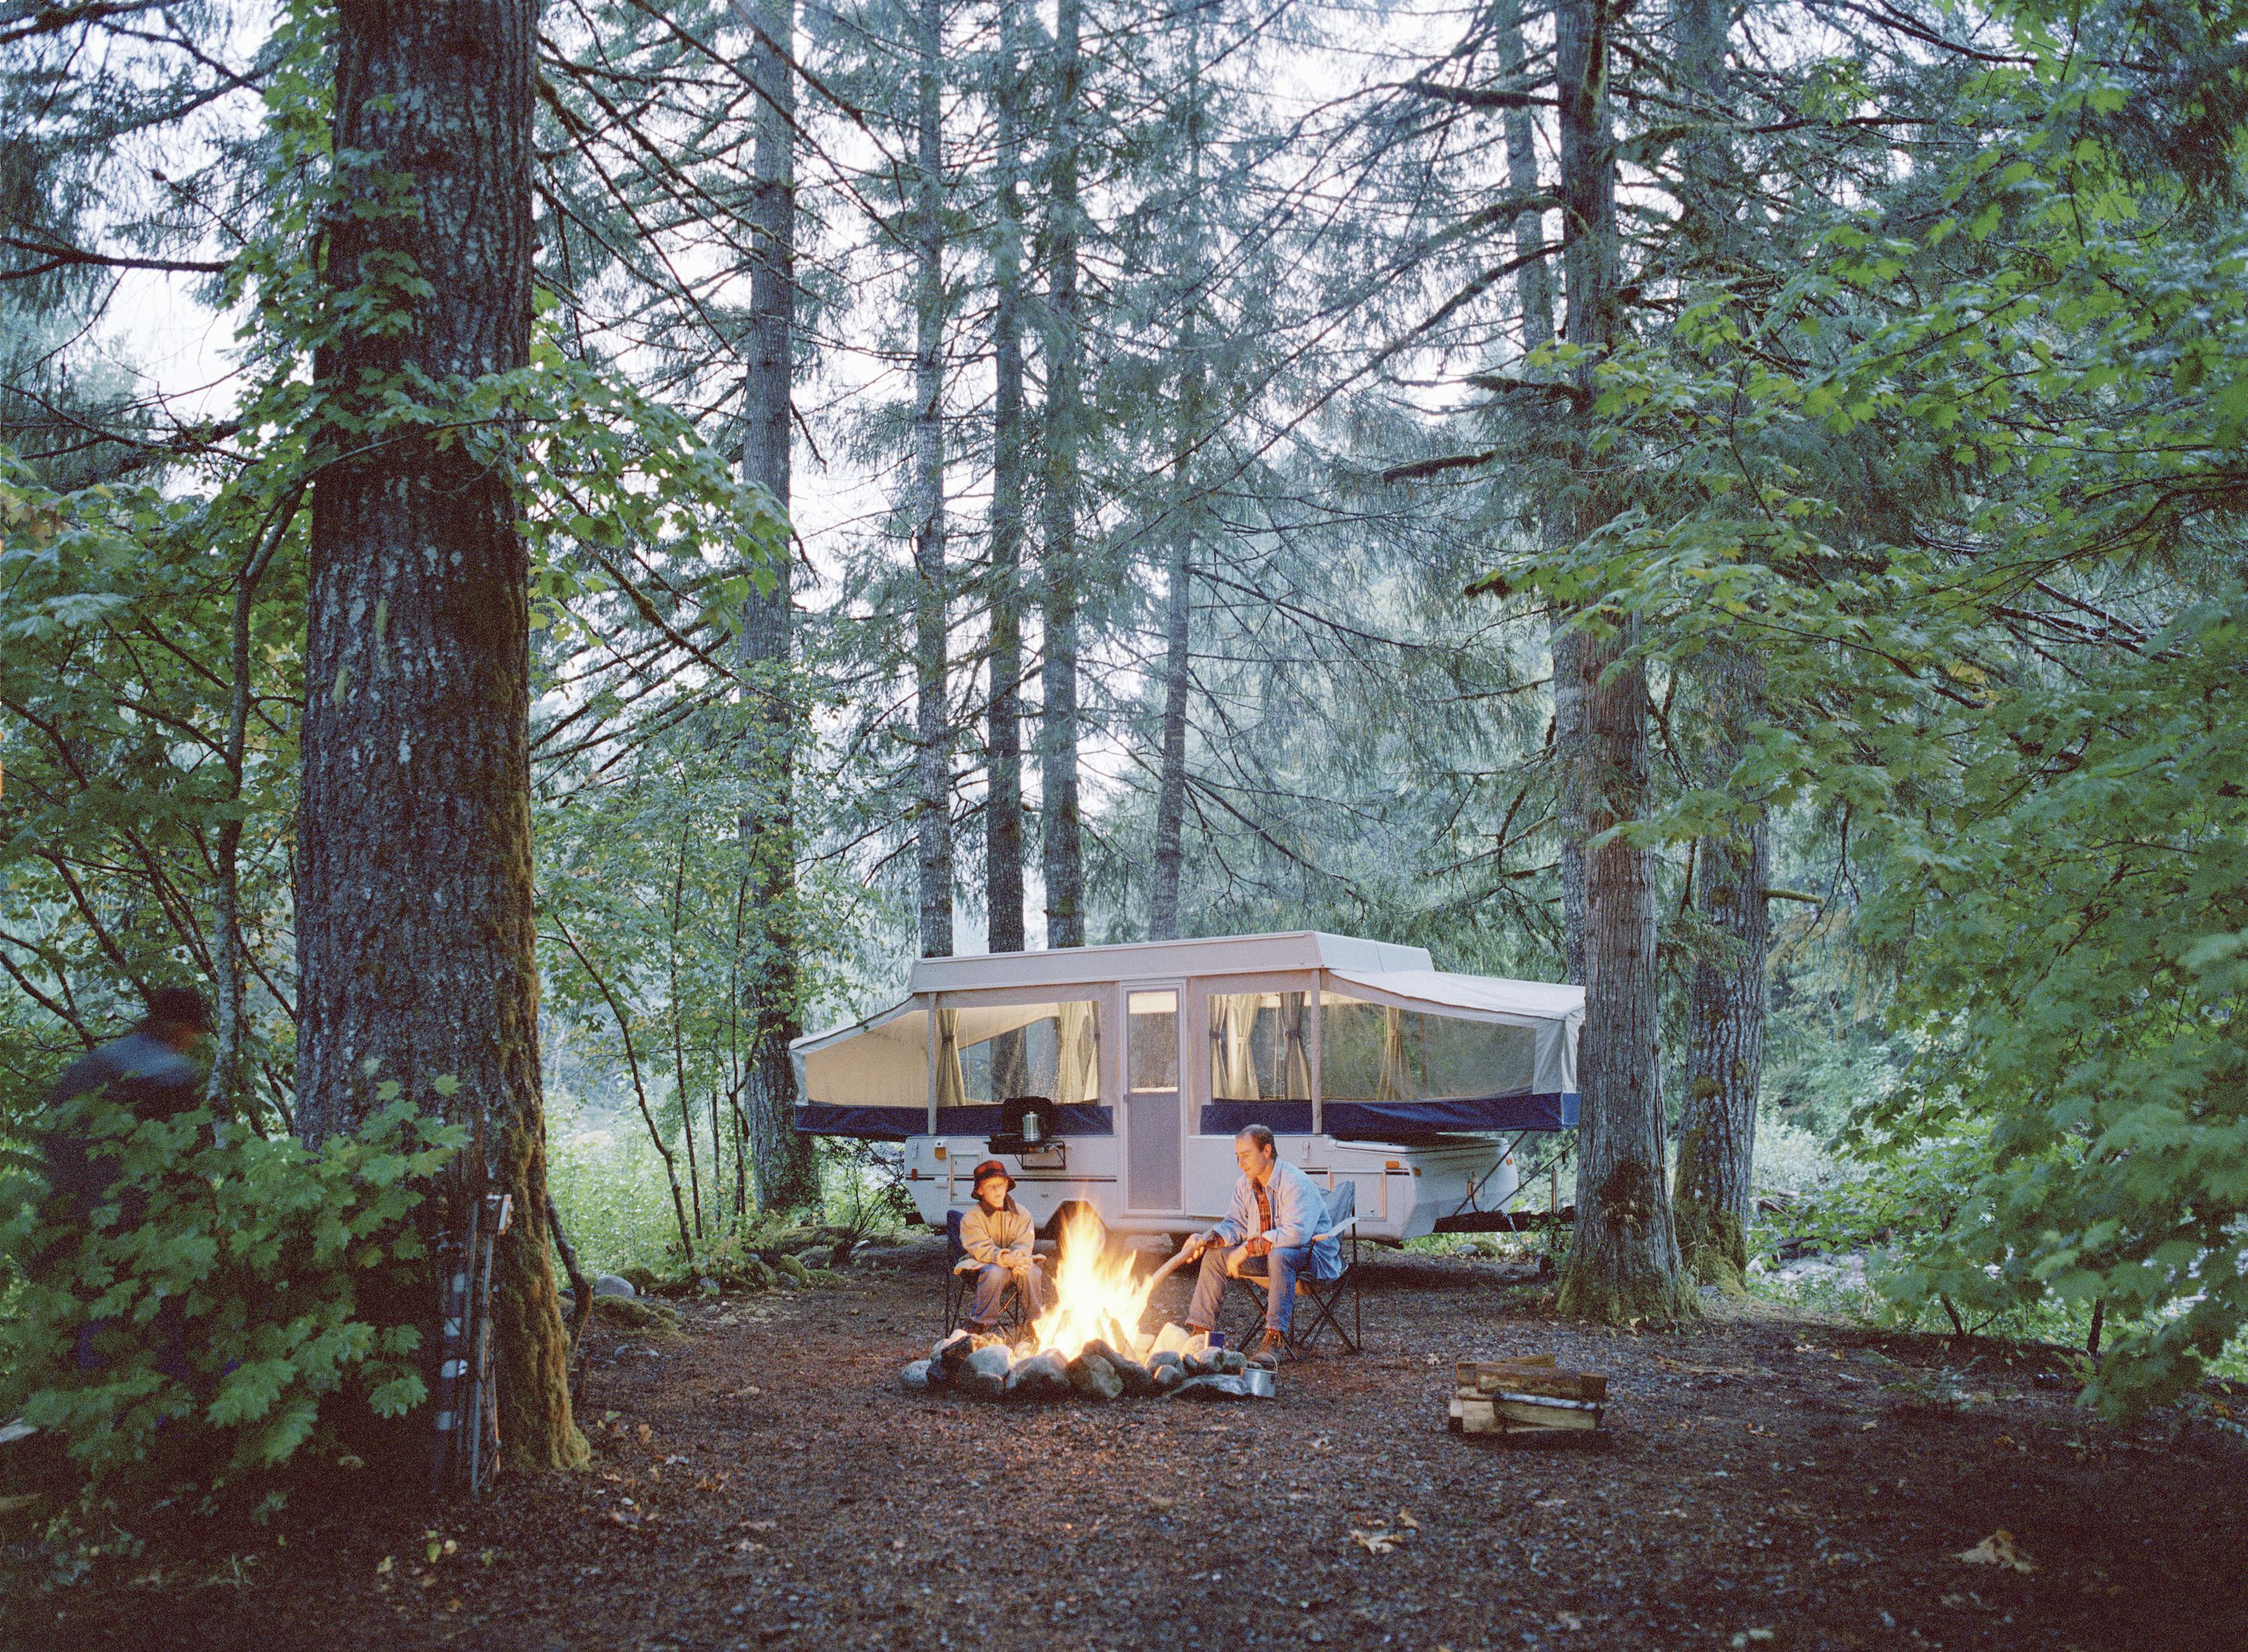 outdoor concerts and festivals with camping